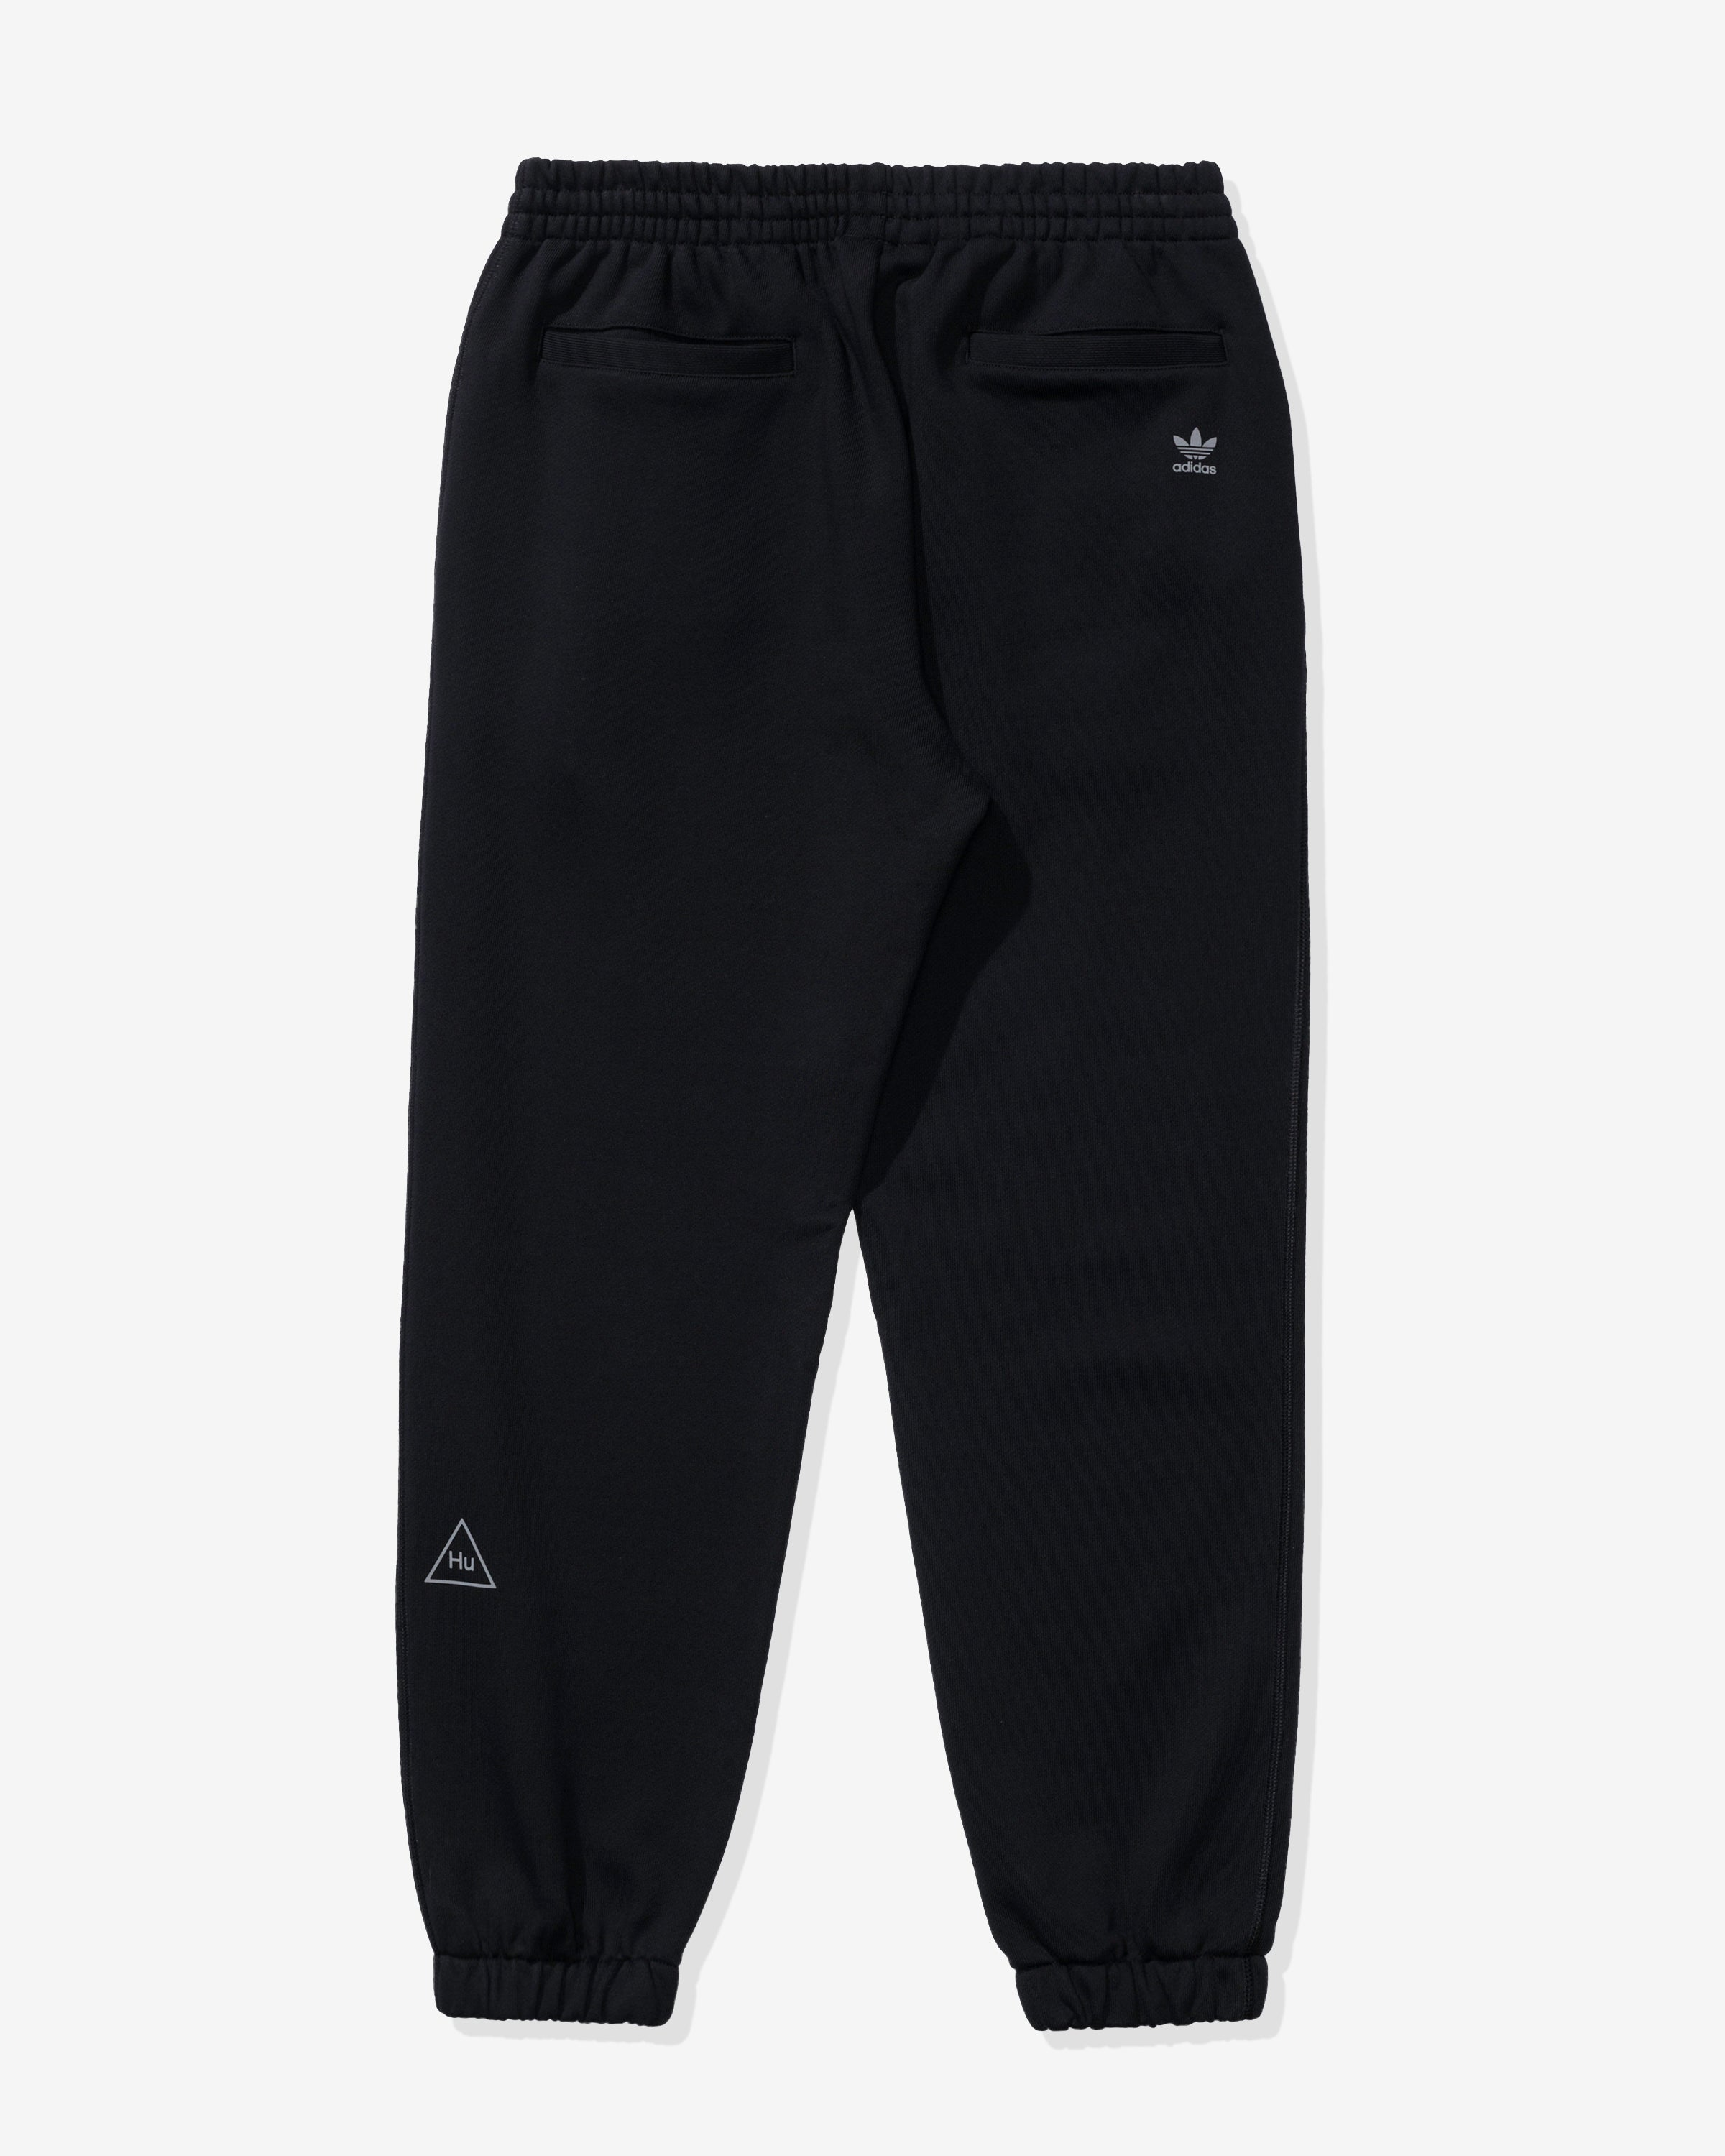 PW BASICS PANT - BLACK